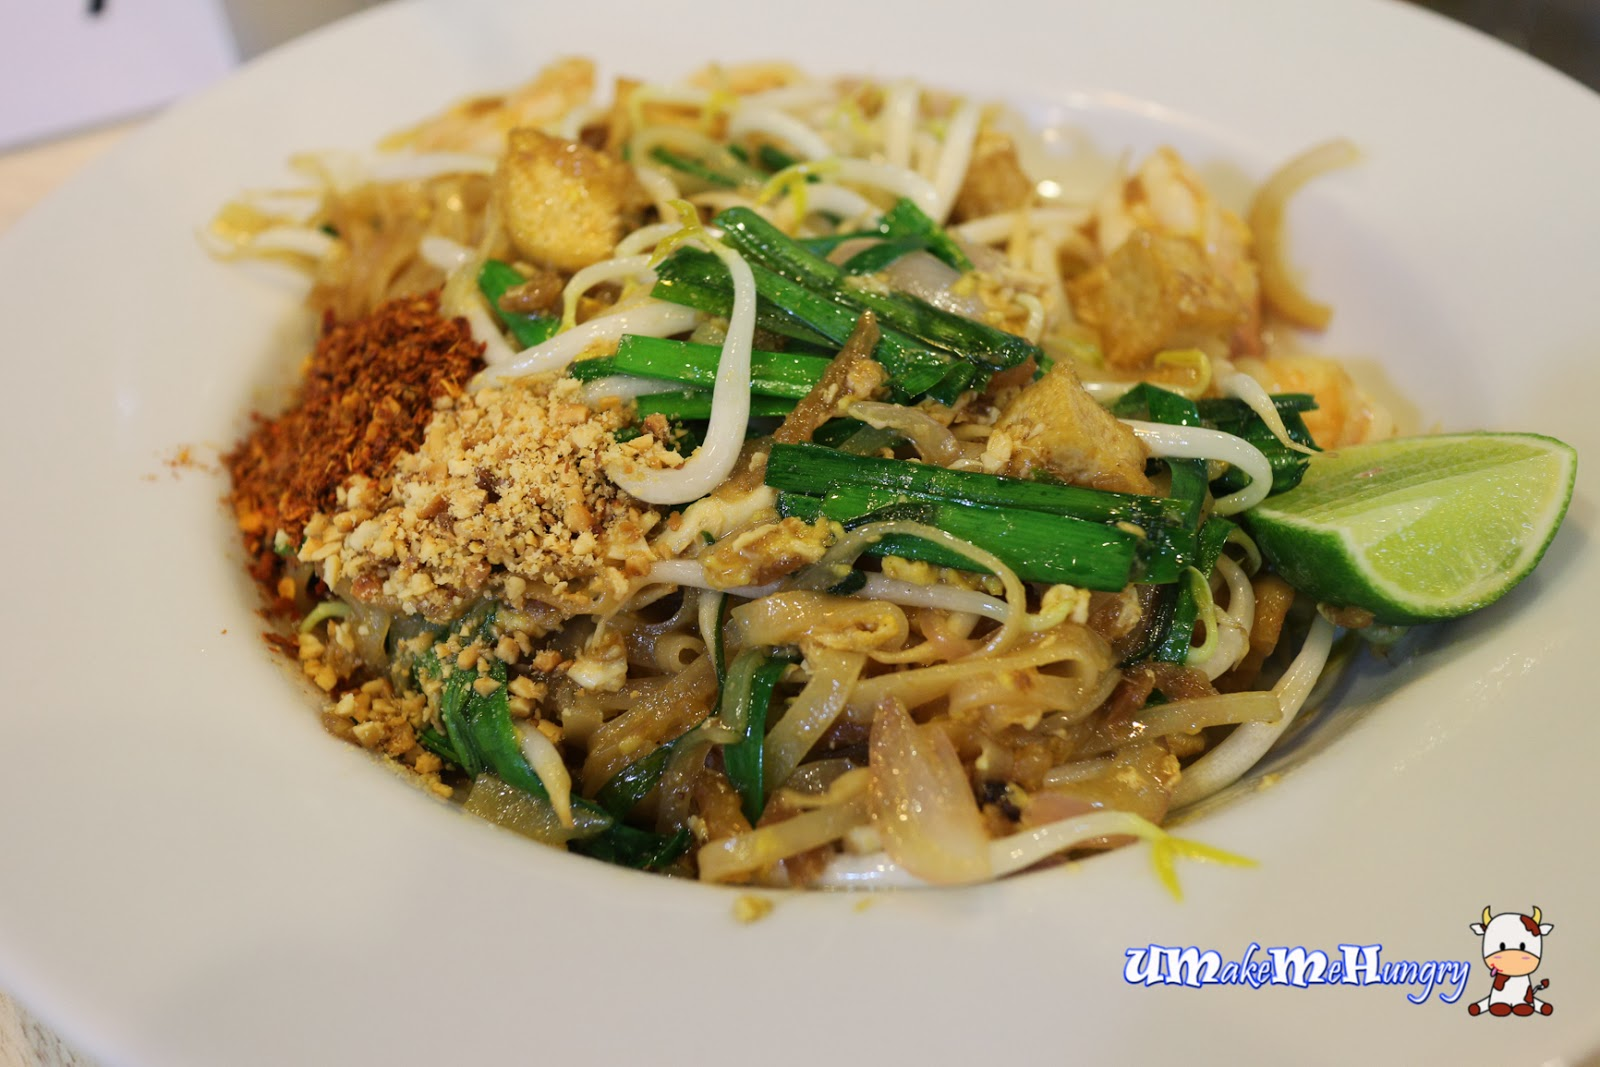 Does Pad Thai Restaurant In St Louis Use Msg